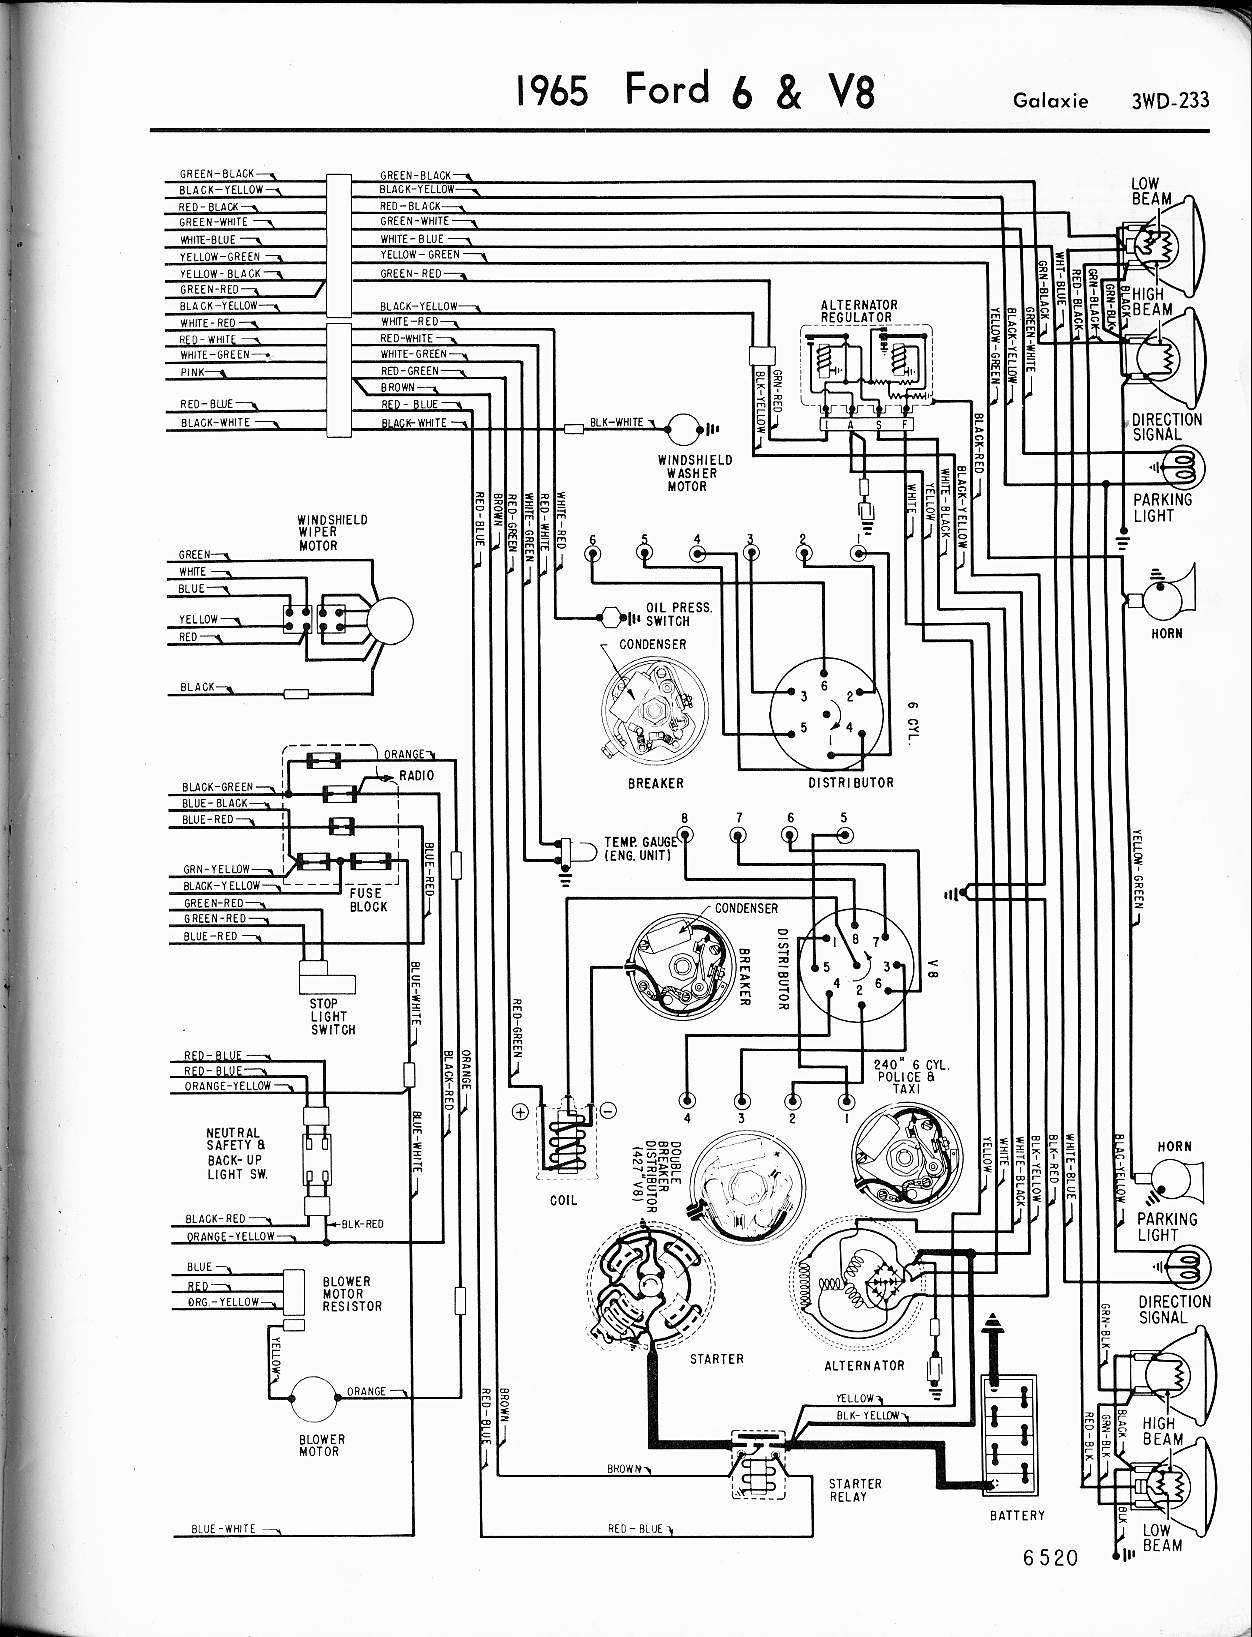 hight resolution of ignition circuit diagram of 1958 ford cars wiring diagram today57 65 ford wiring diagrams 1965 6